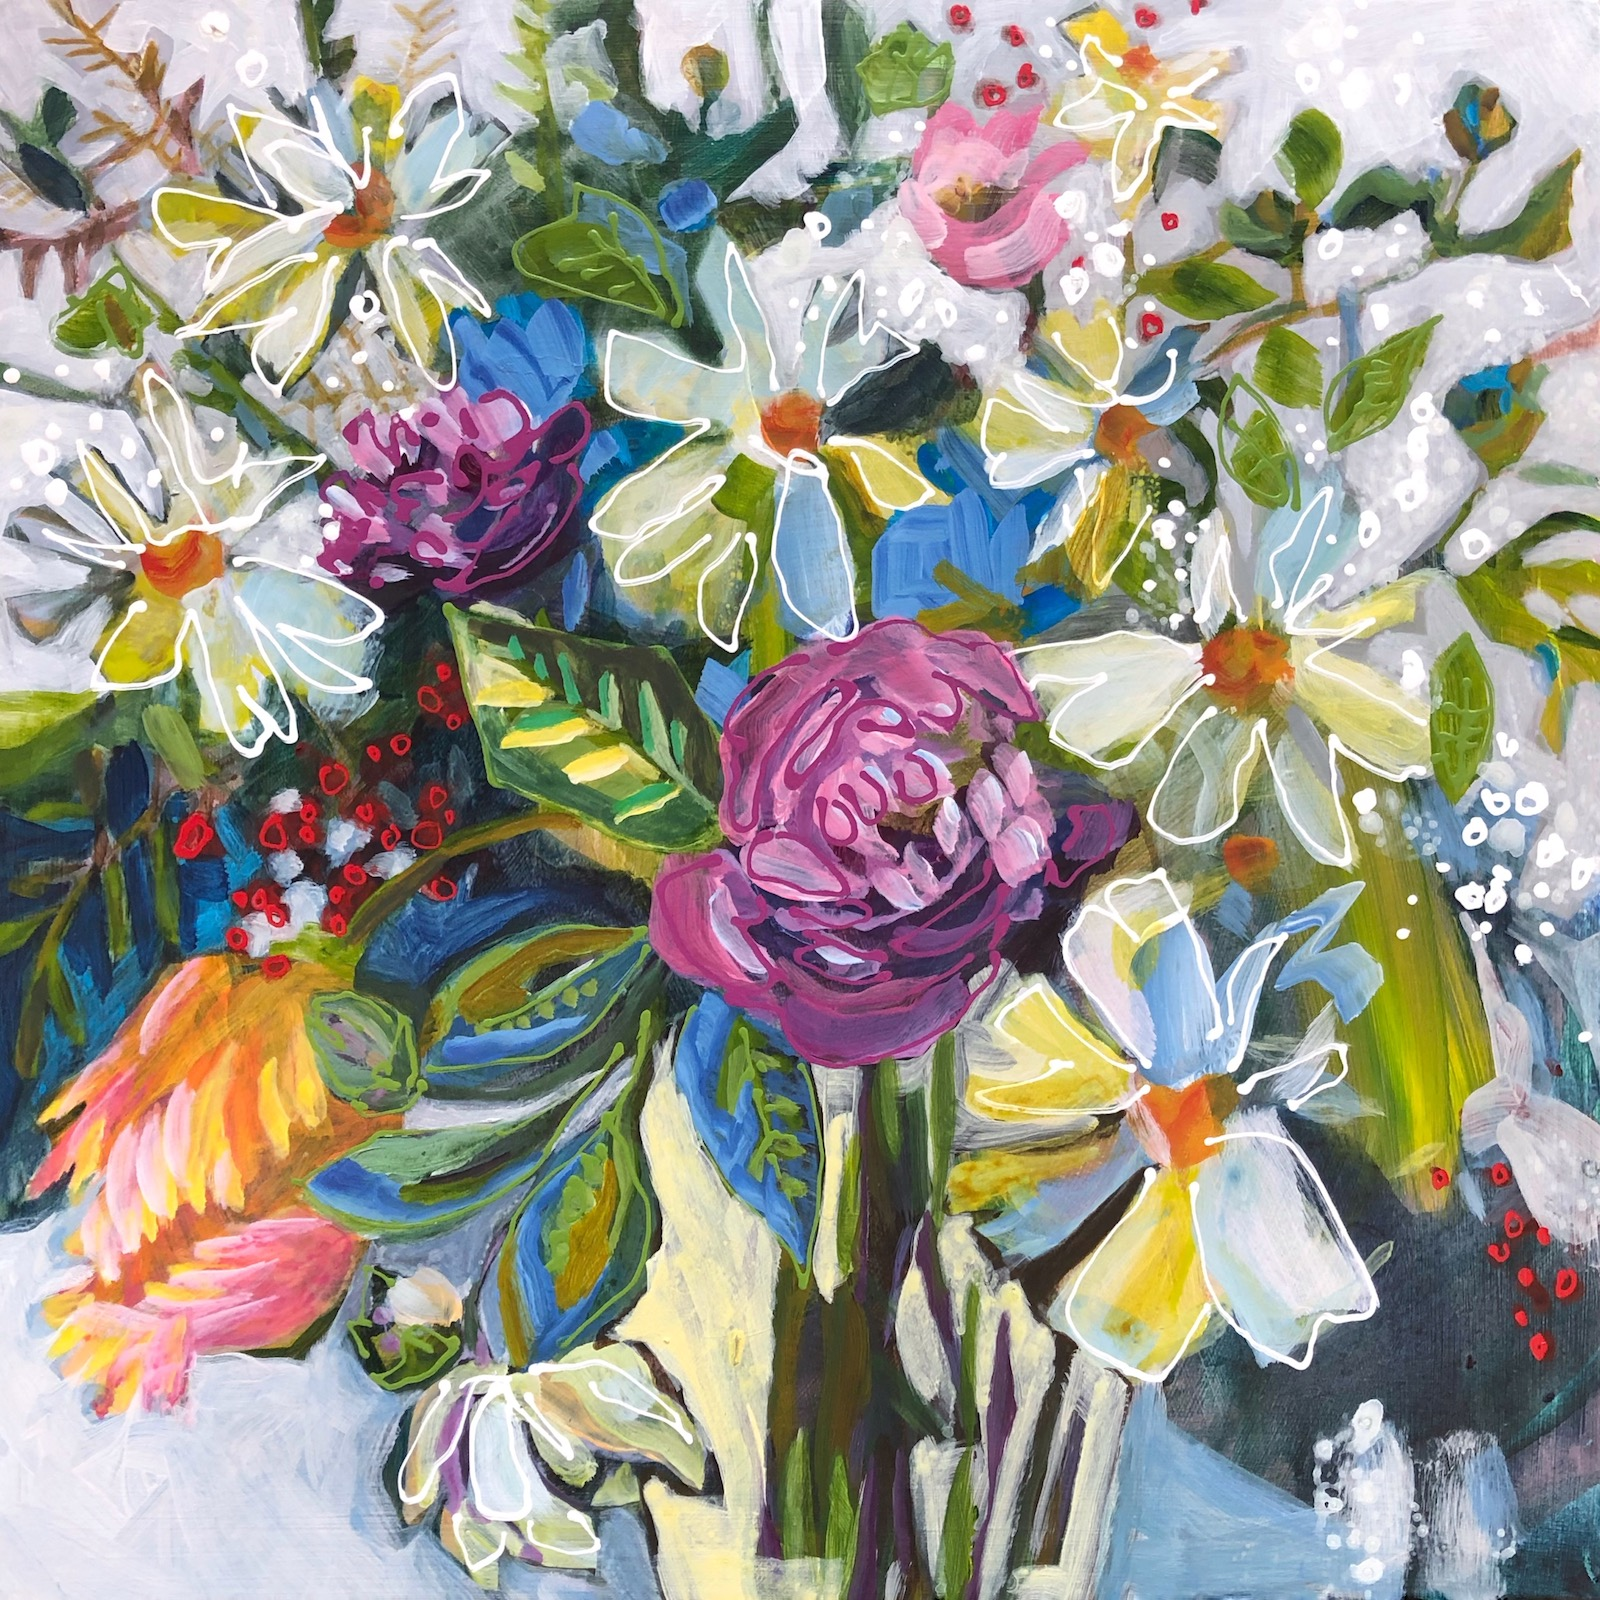 Painting Floral No6 created by the fabulous artist Lance Whitner in the small town of Steamboat Springs in the Colorado Rocky Mountains